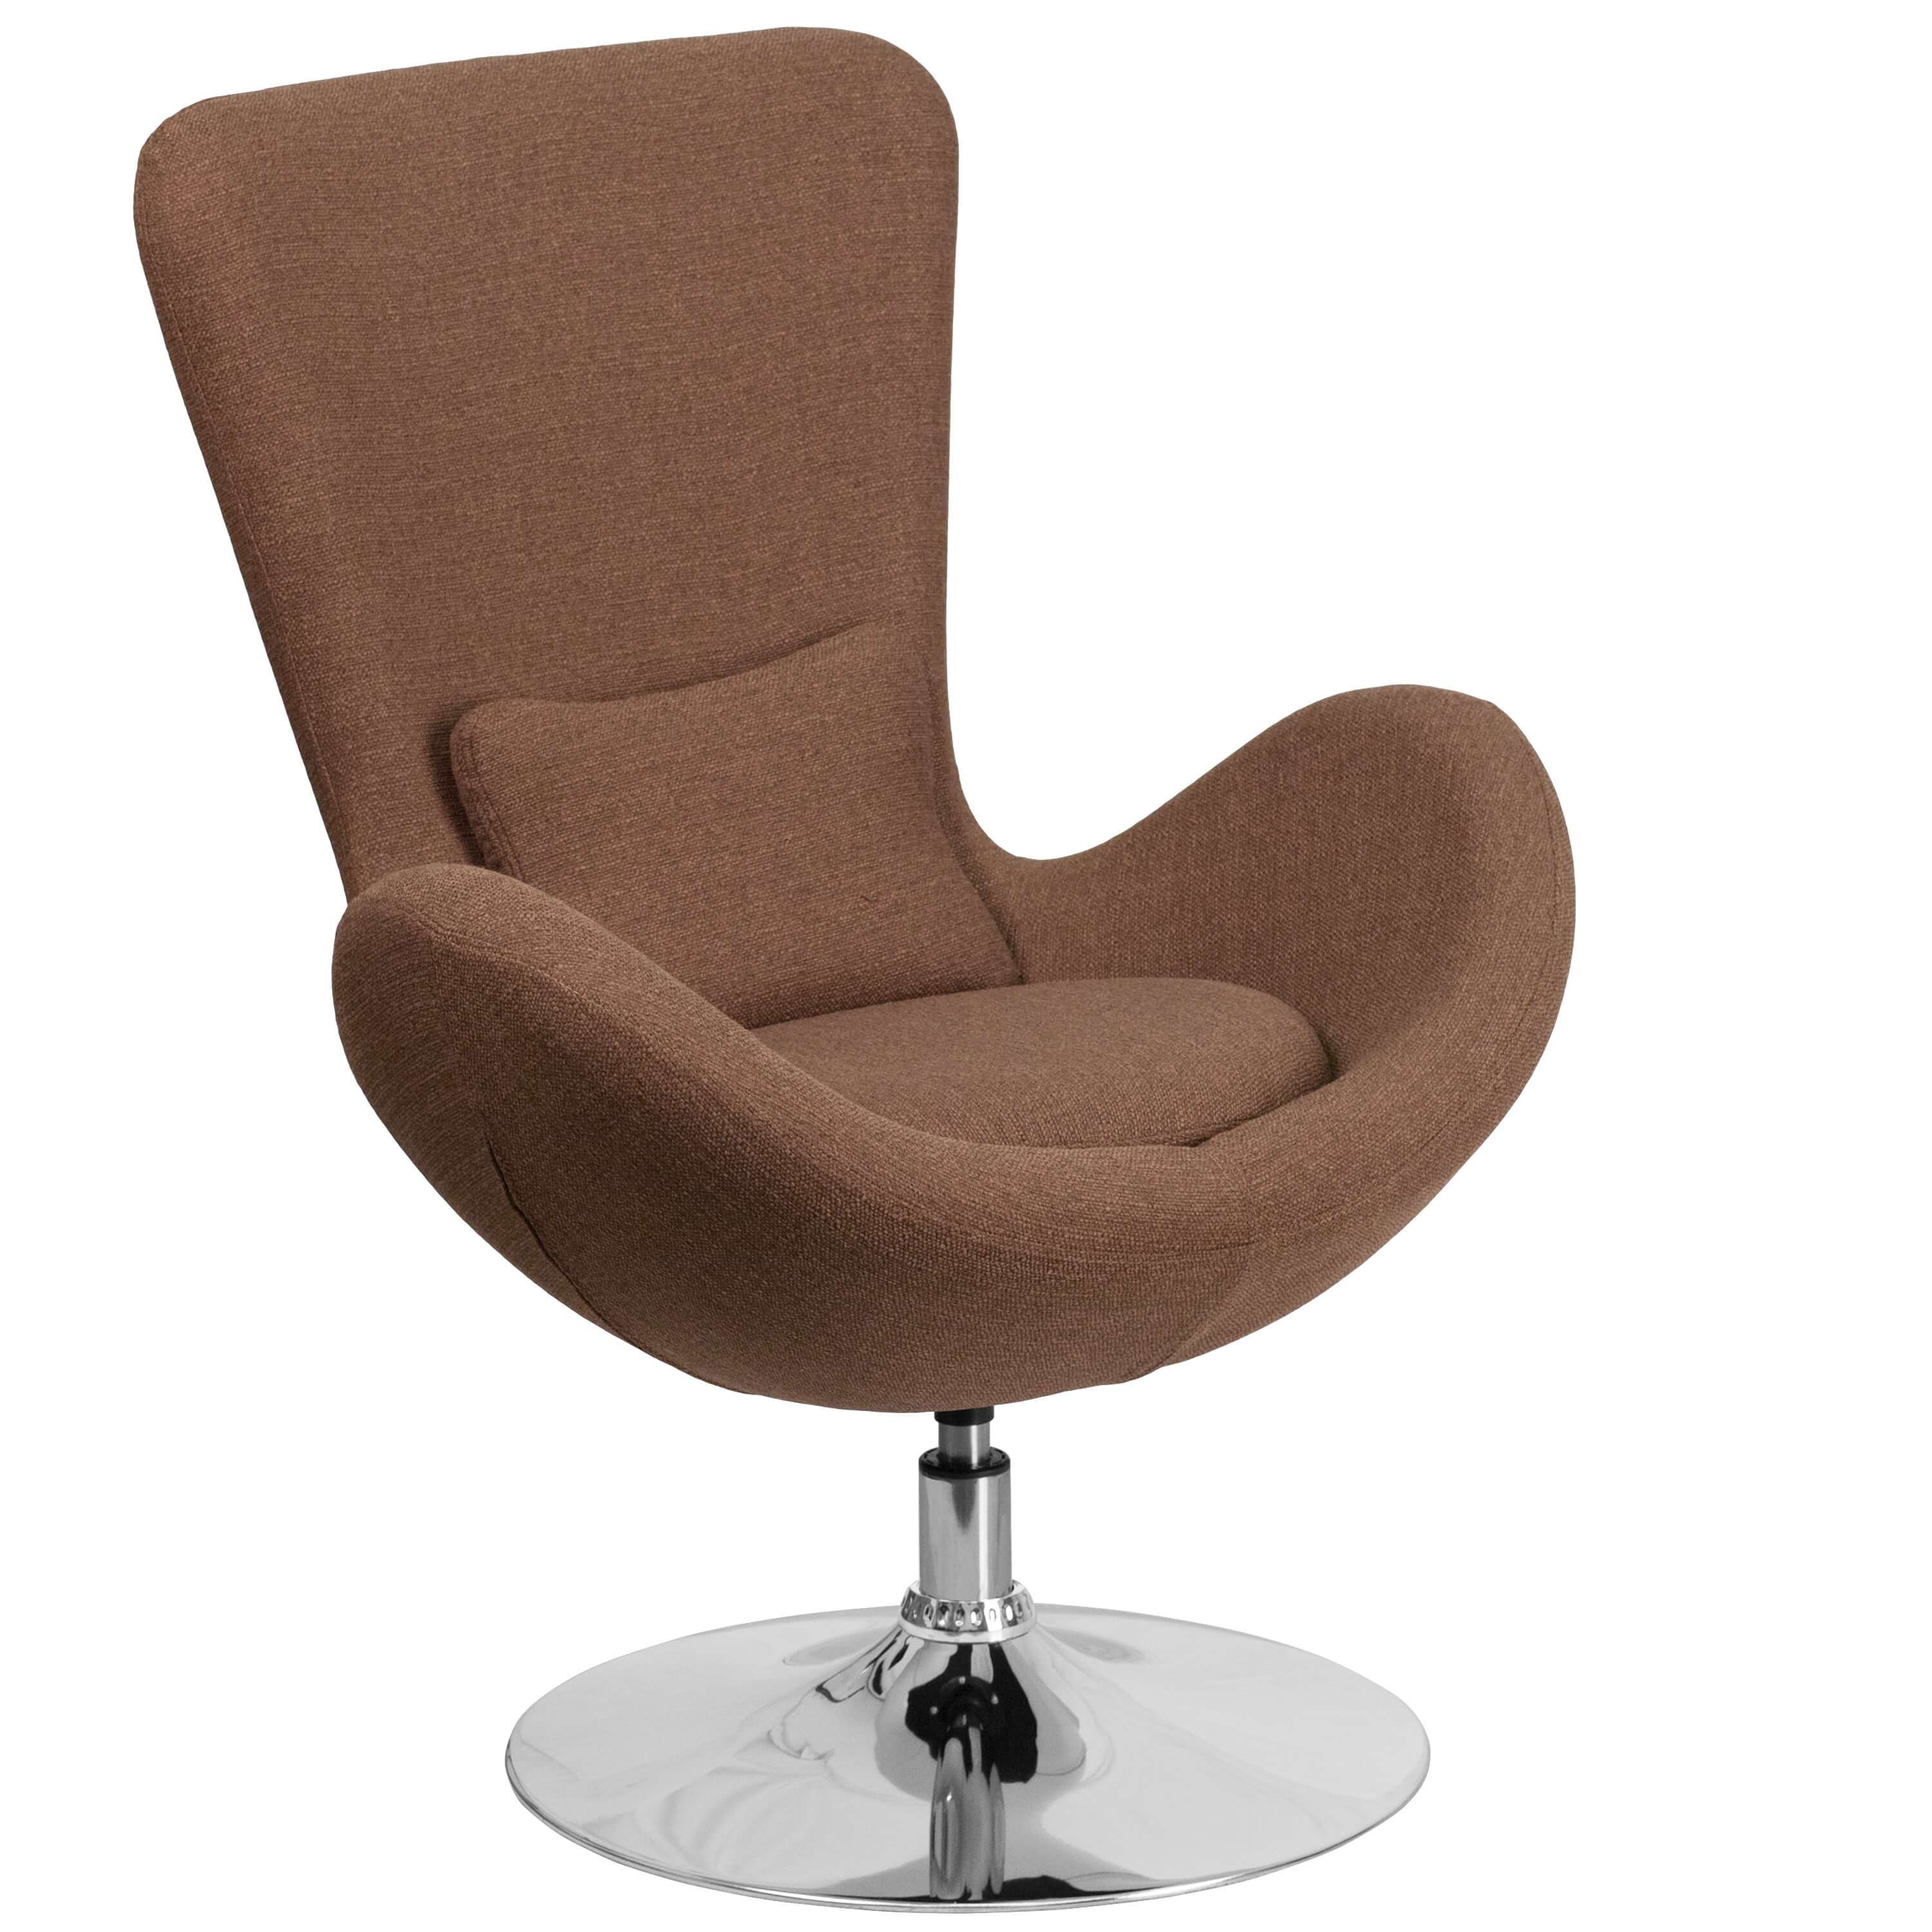 Office lounge chairs CUB CH 162430 BN FAB GG FLA